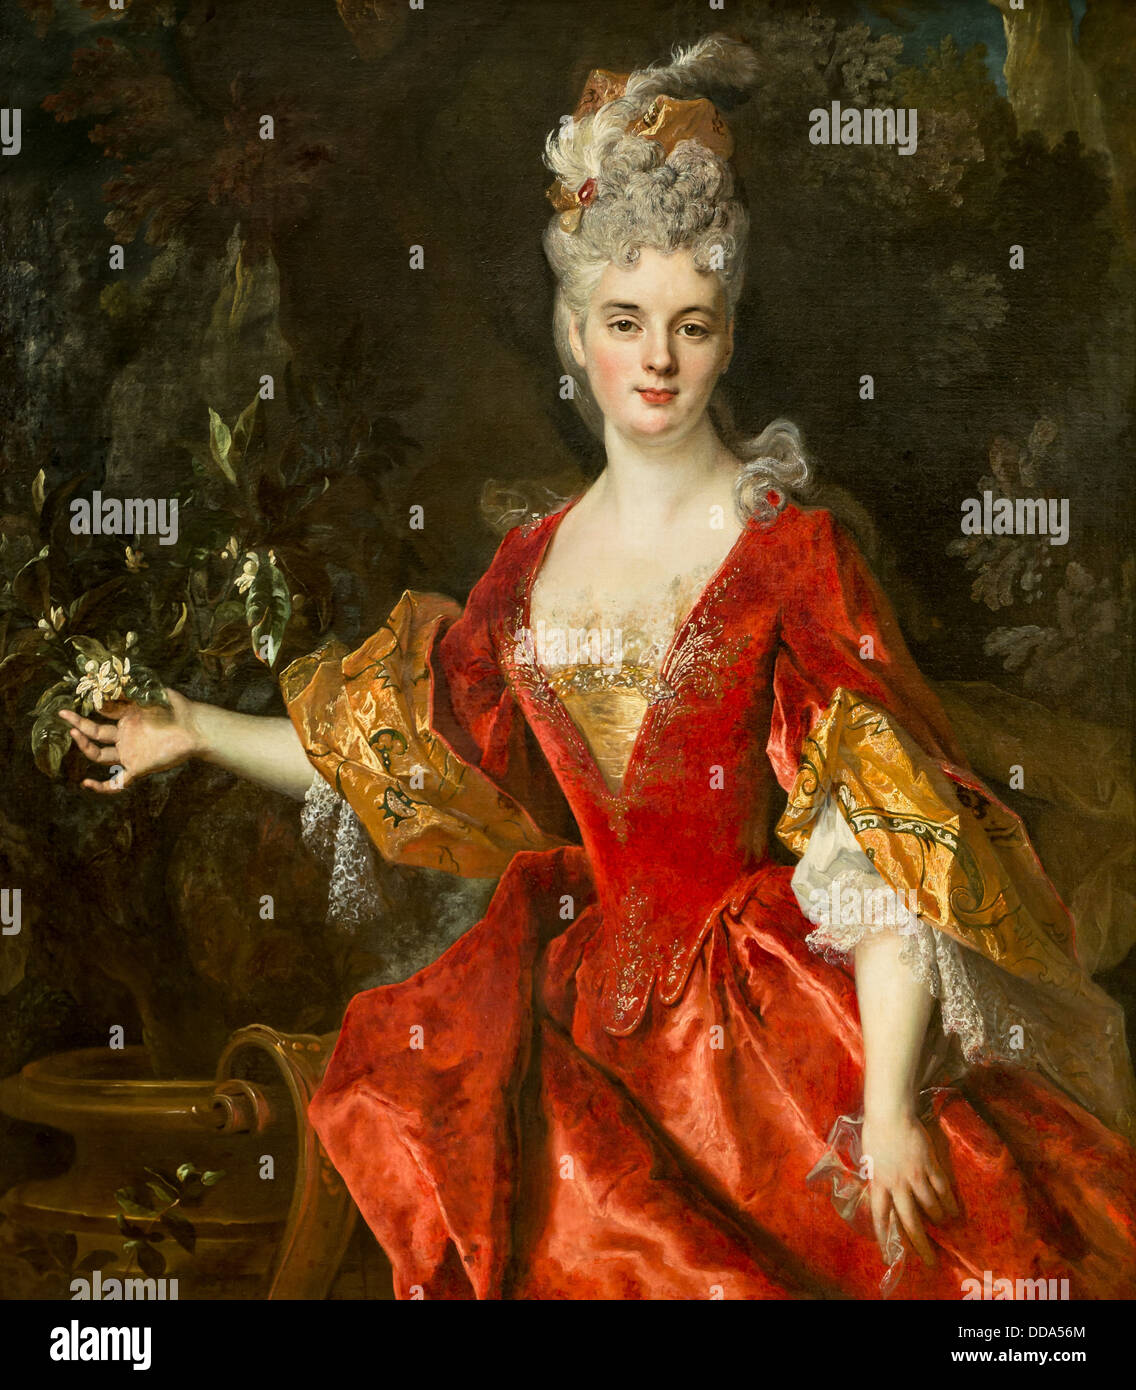 th century portrait of young w said elisabeth de stock  18th century portrait of young w said elisabeth de beauharnais 1701 nicolas de largilliere oil on canvas